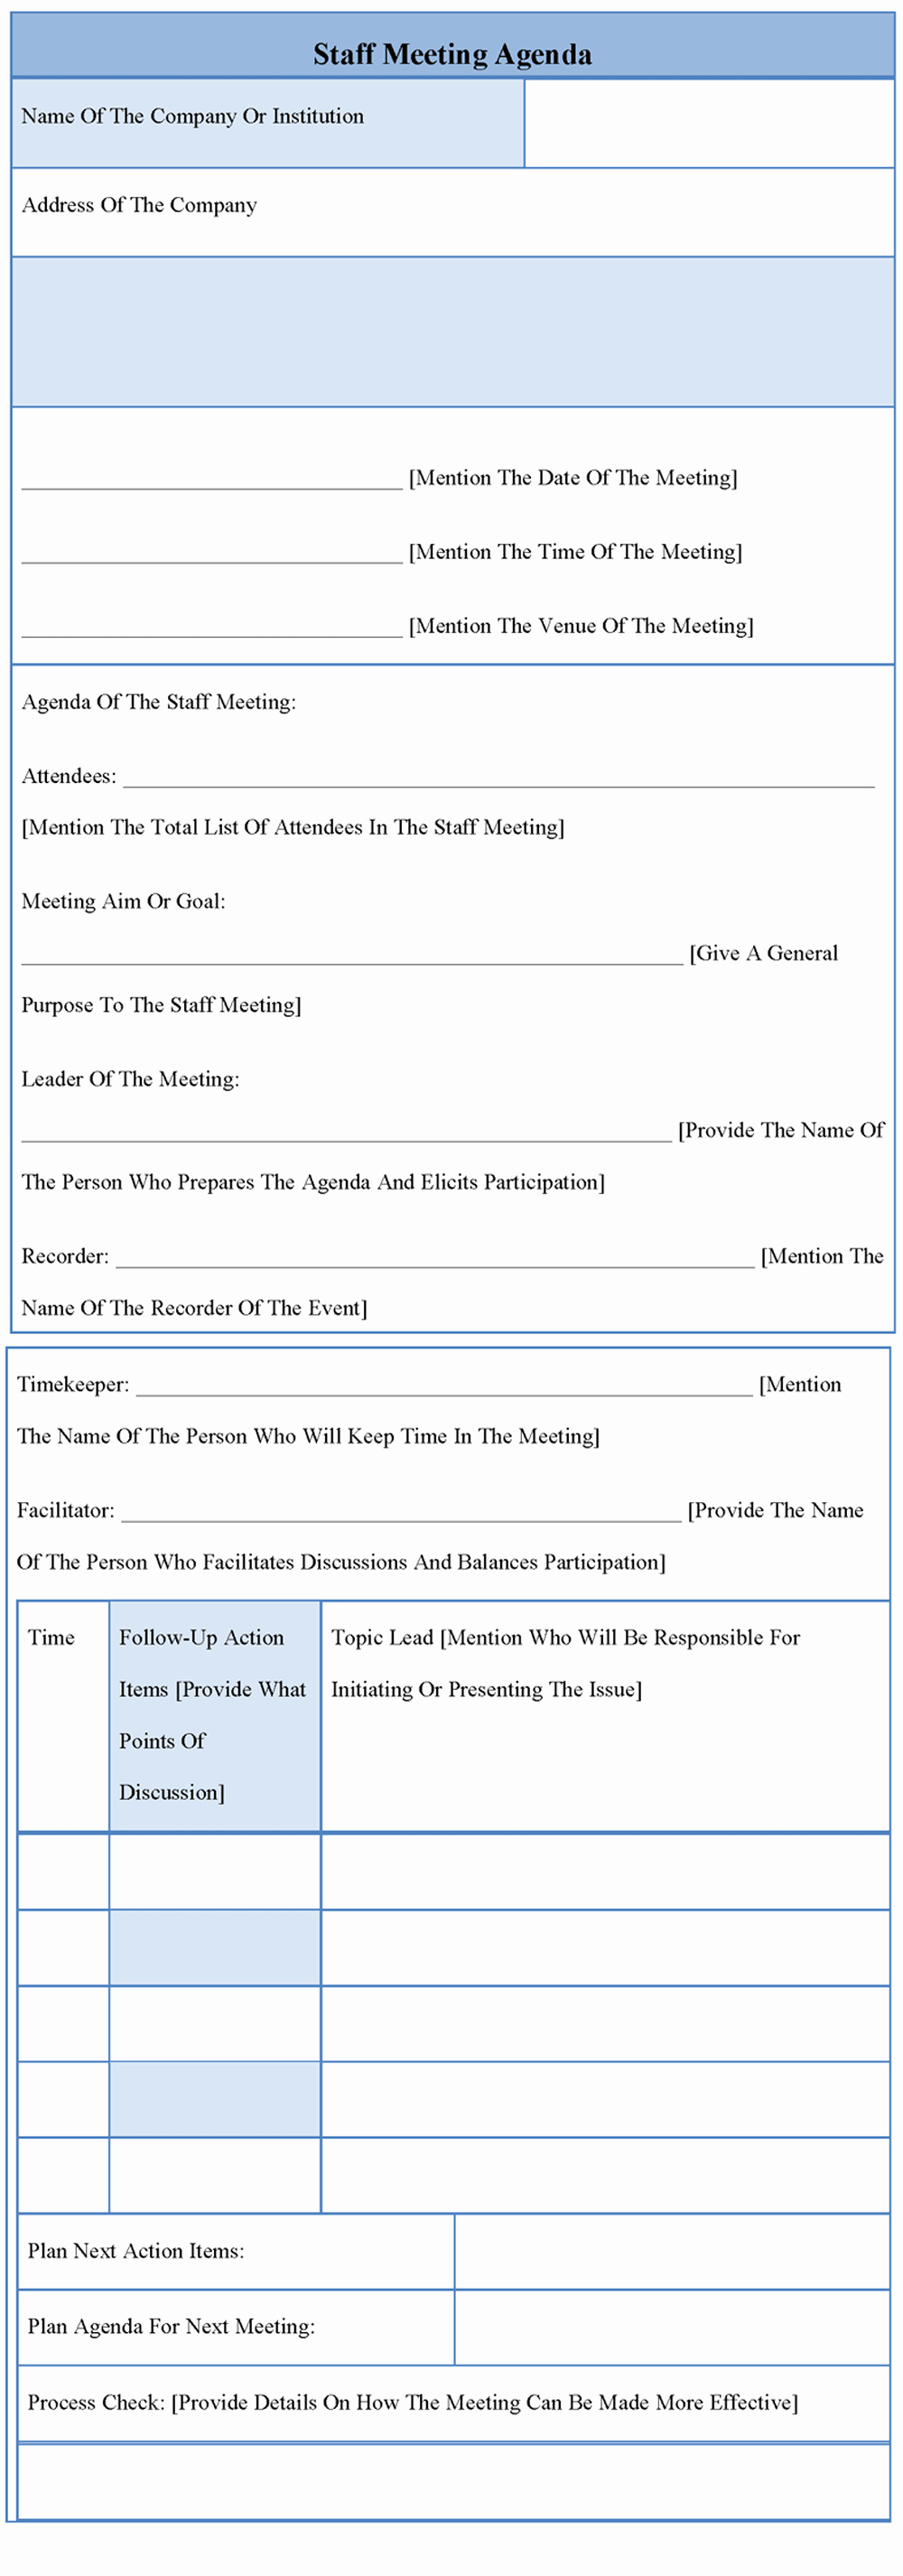 Staff Meetings Agenda Template Lovely Agenda Template for Staff Meeting Example Of Staff